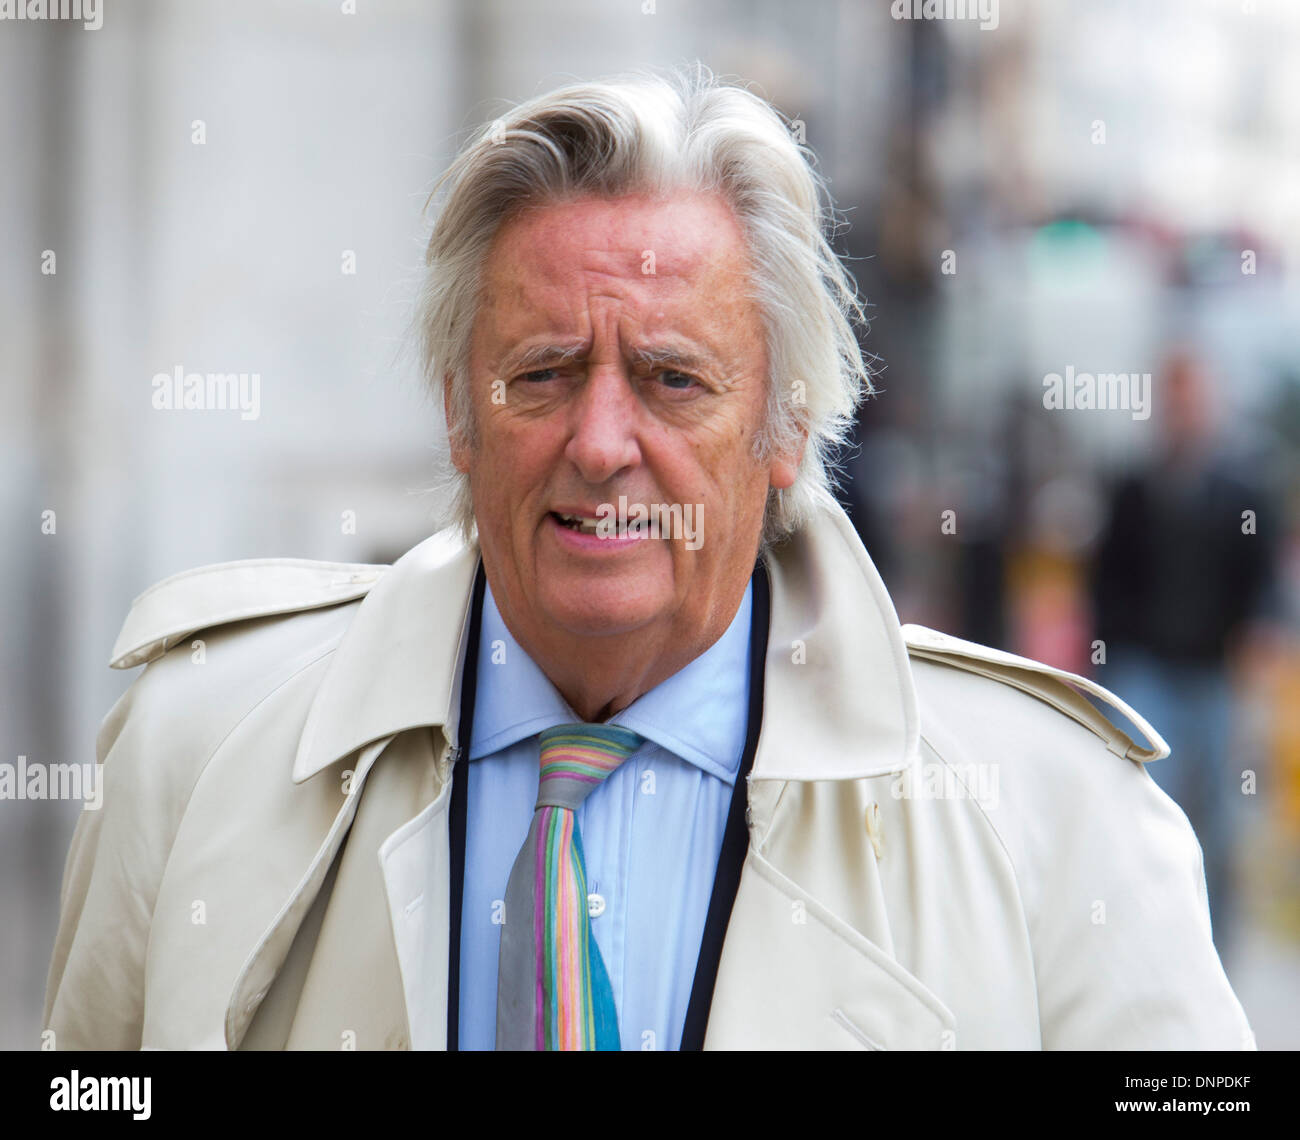 Michael Mansfield QC outside the High Court,The Strand, London - Stock Image